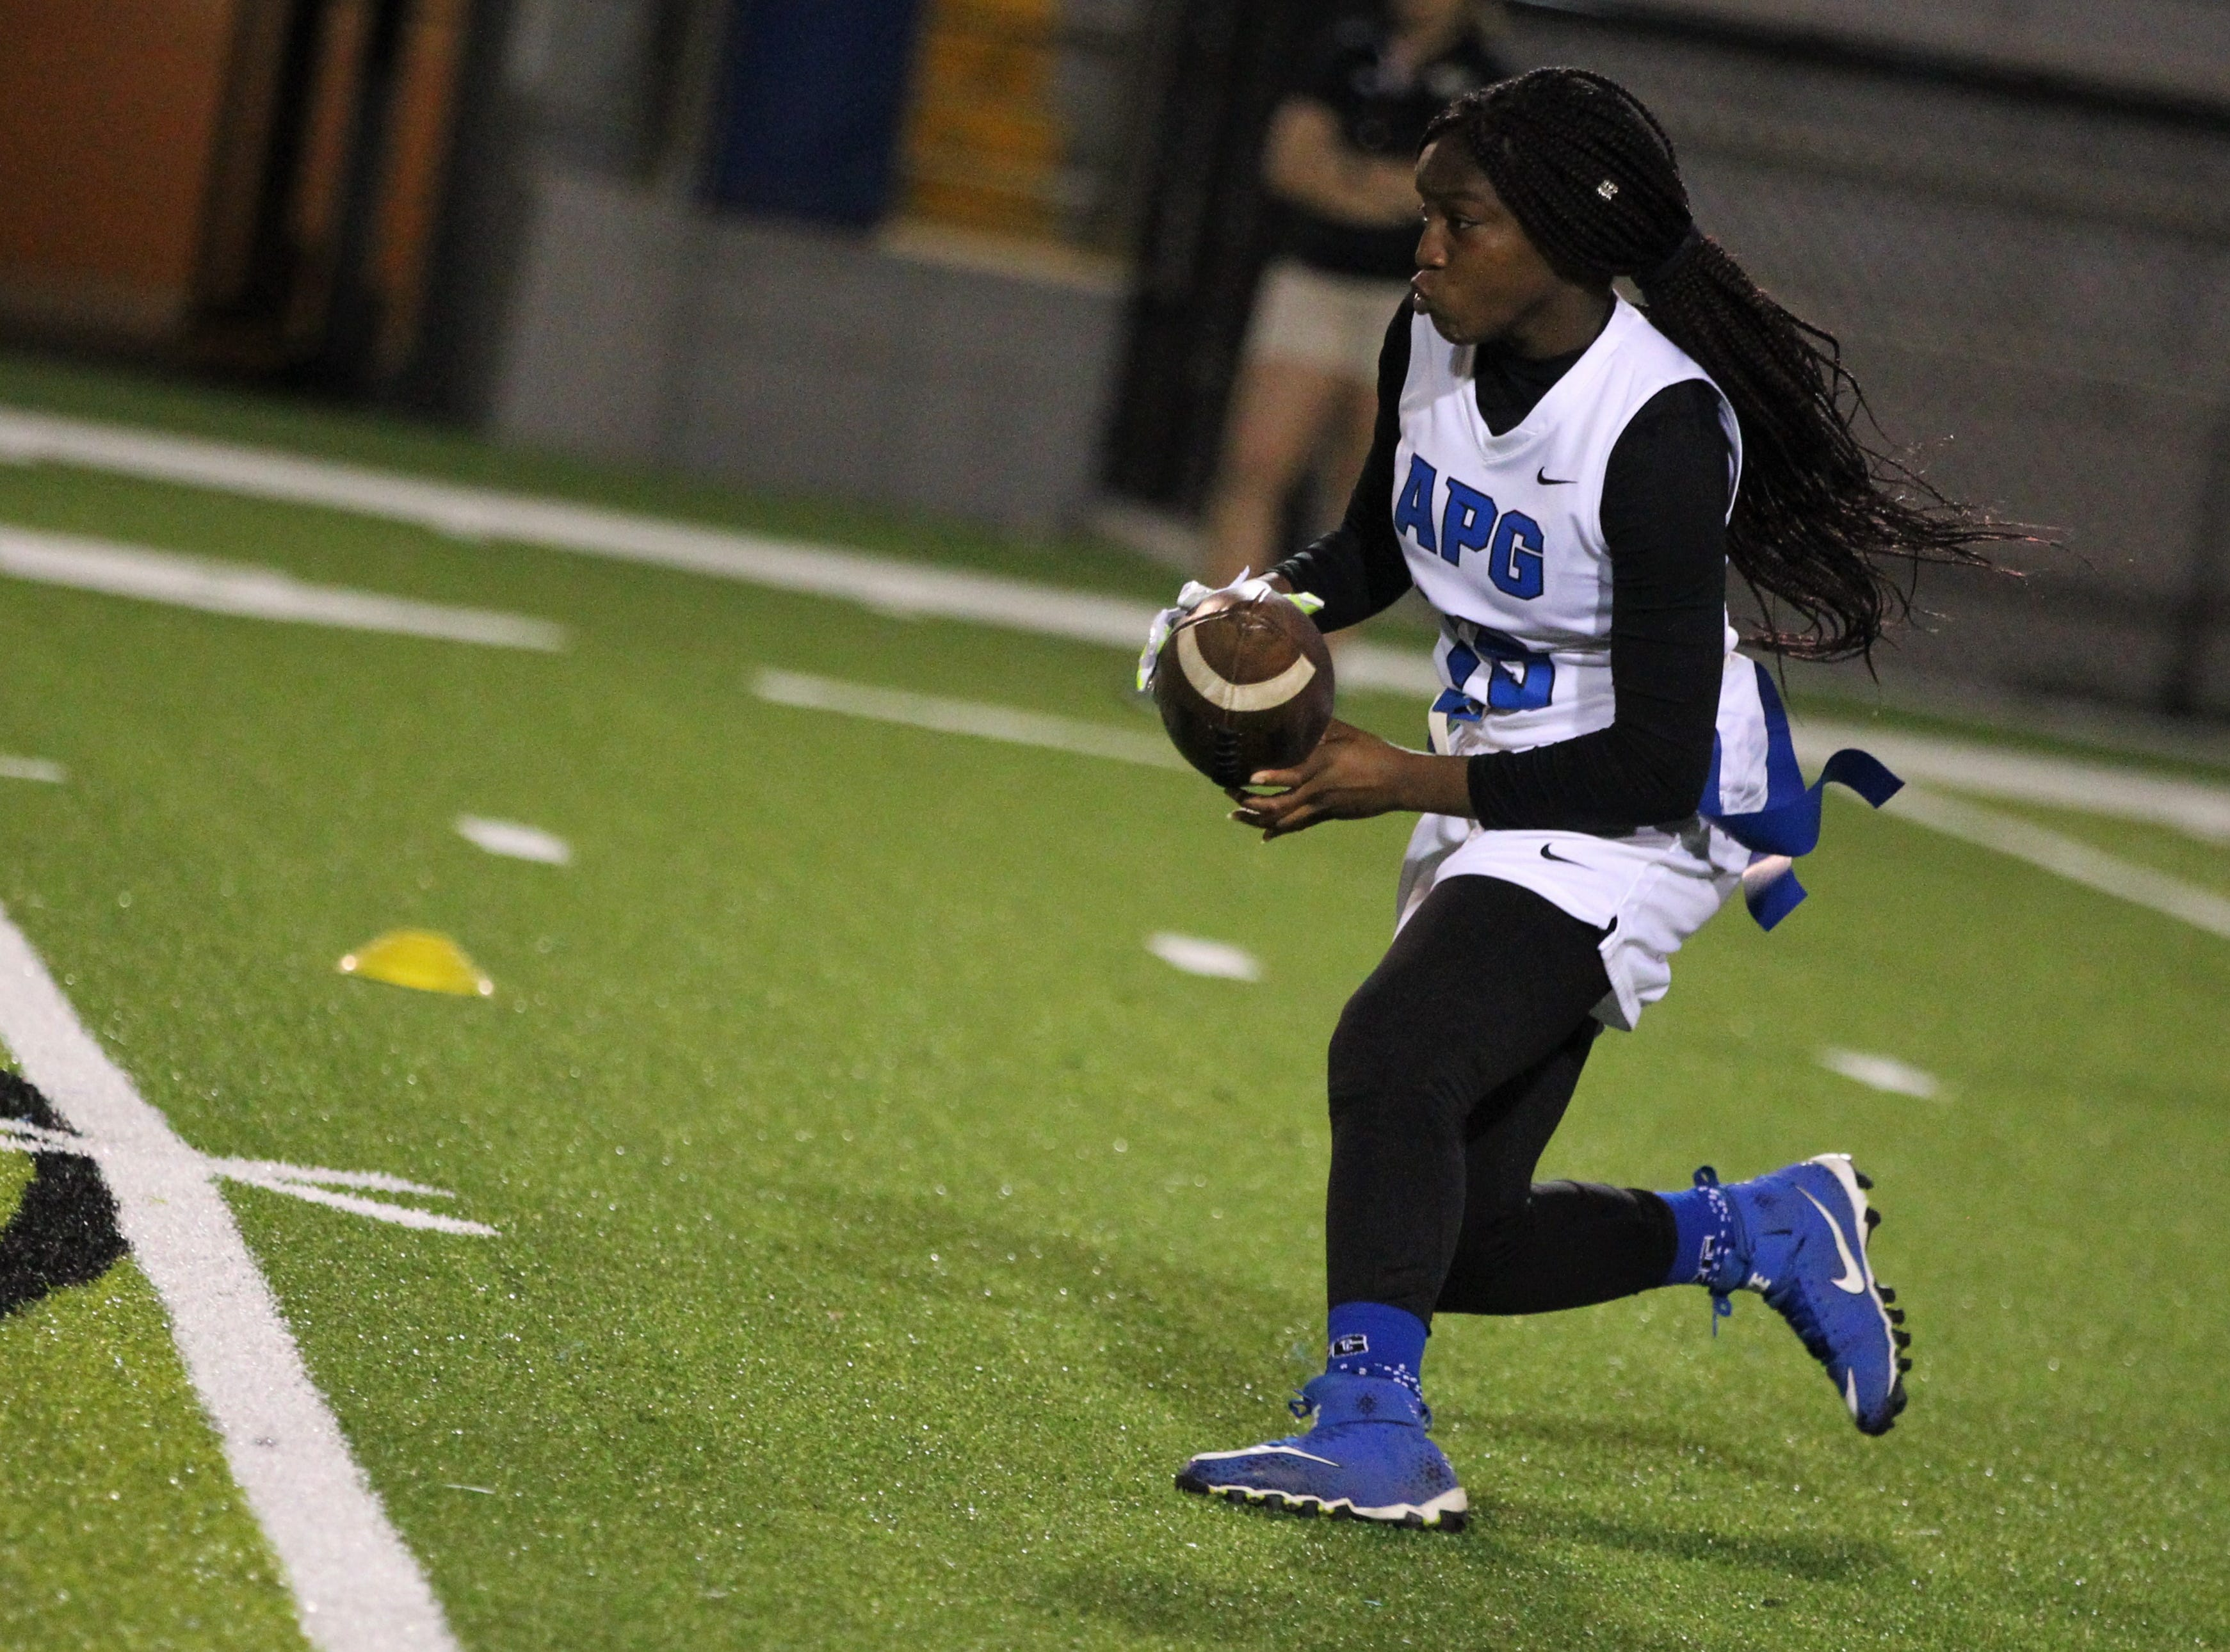 Godby's Essence Nobles runs upfield after a catch as Godby's flag football team beat Lincoln 25-6 at Gene Cox Stadium on March 14, 2019.